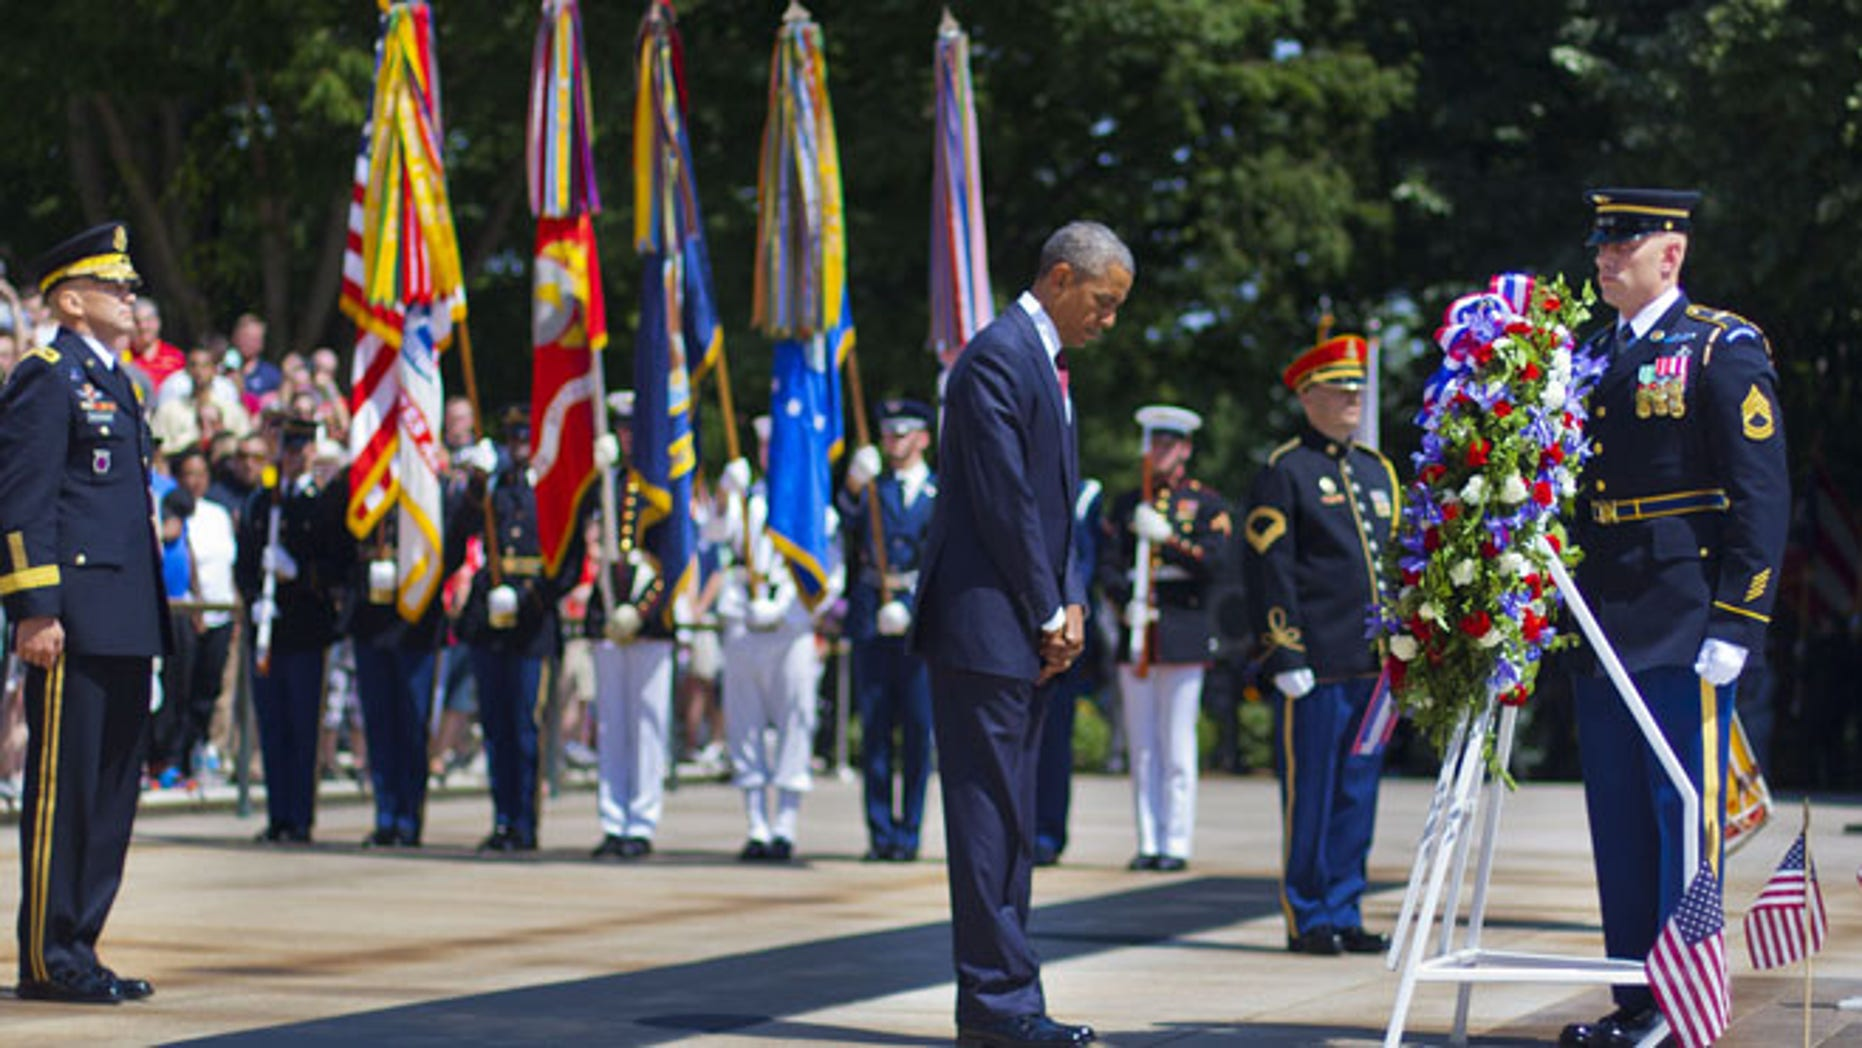 May 25, 2015: President Obama, center accompanied by Maj. Gen. Jeffrey S. Buchanan, left, Commander of the U.S. Army Military District of Washington, and Sgt. 1st Class John C. Wirth, right.